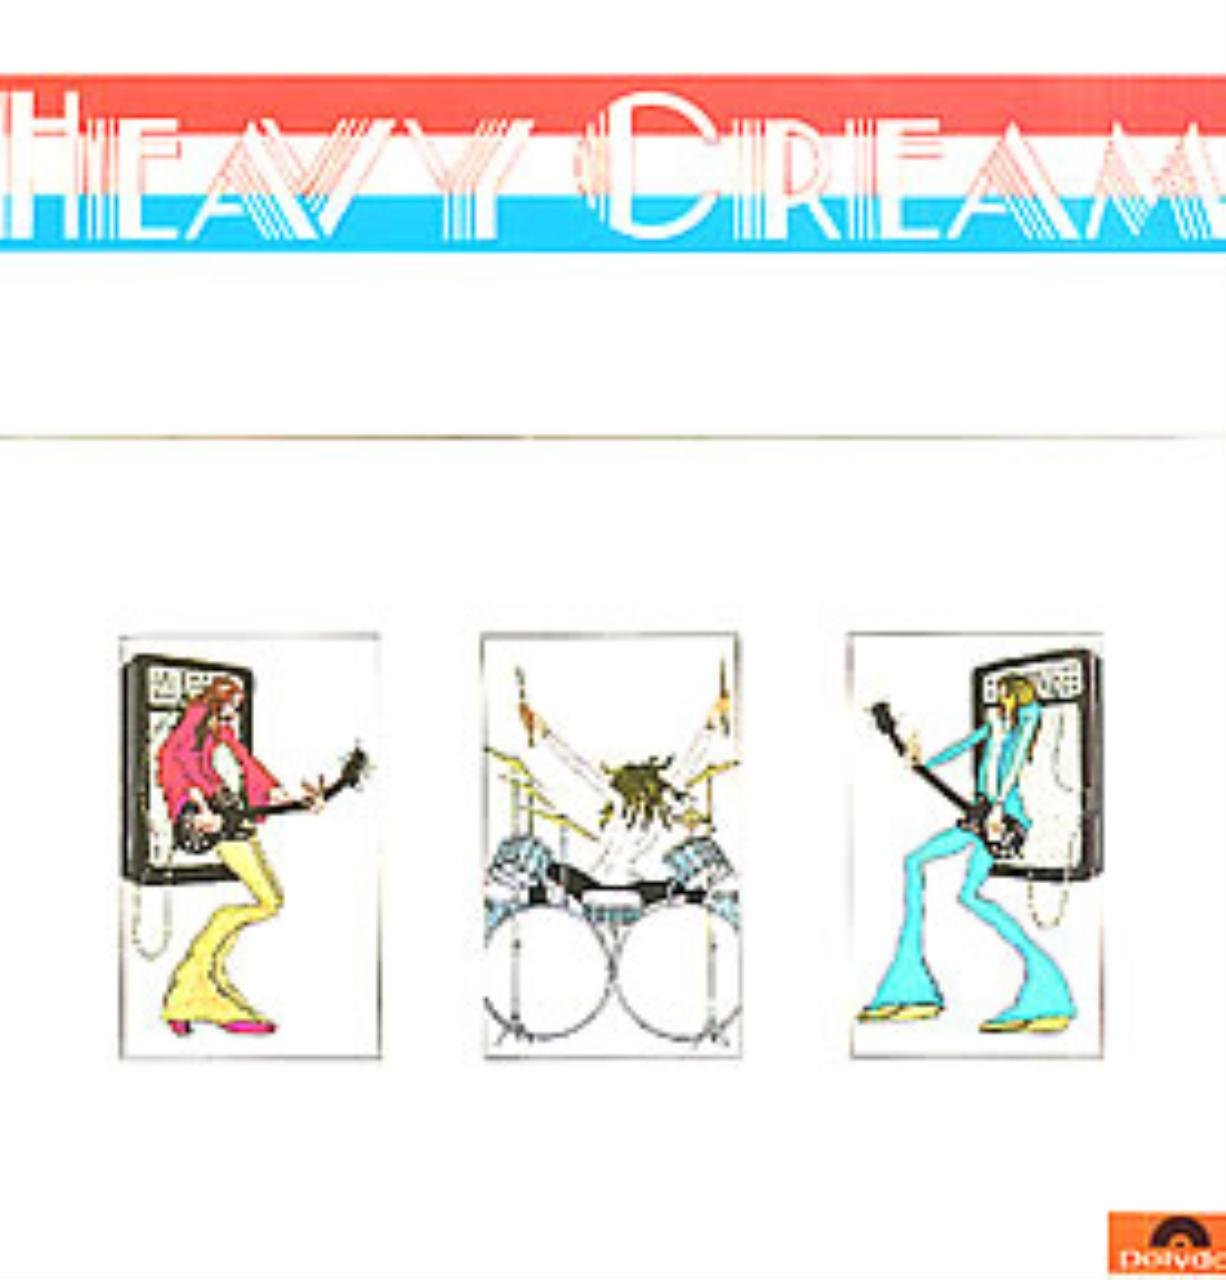 Heavy Cream by Polydor